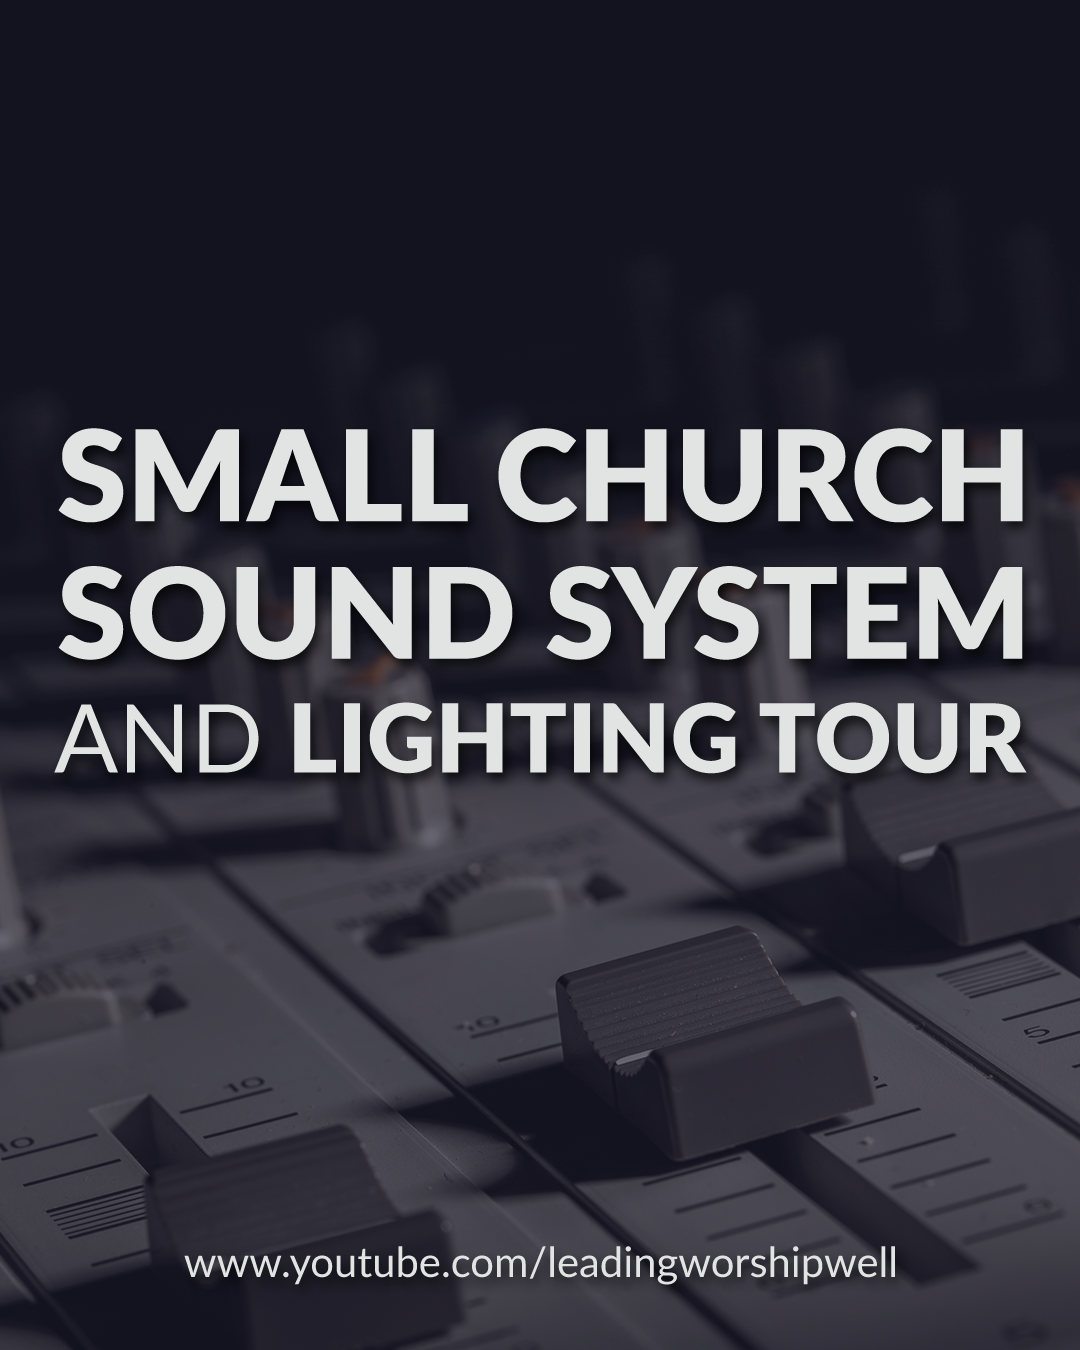 Small Church Sound System And Lighting Tour (Video)